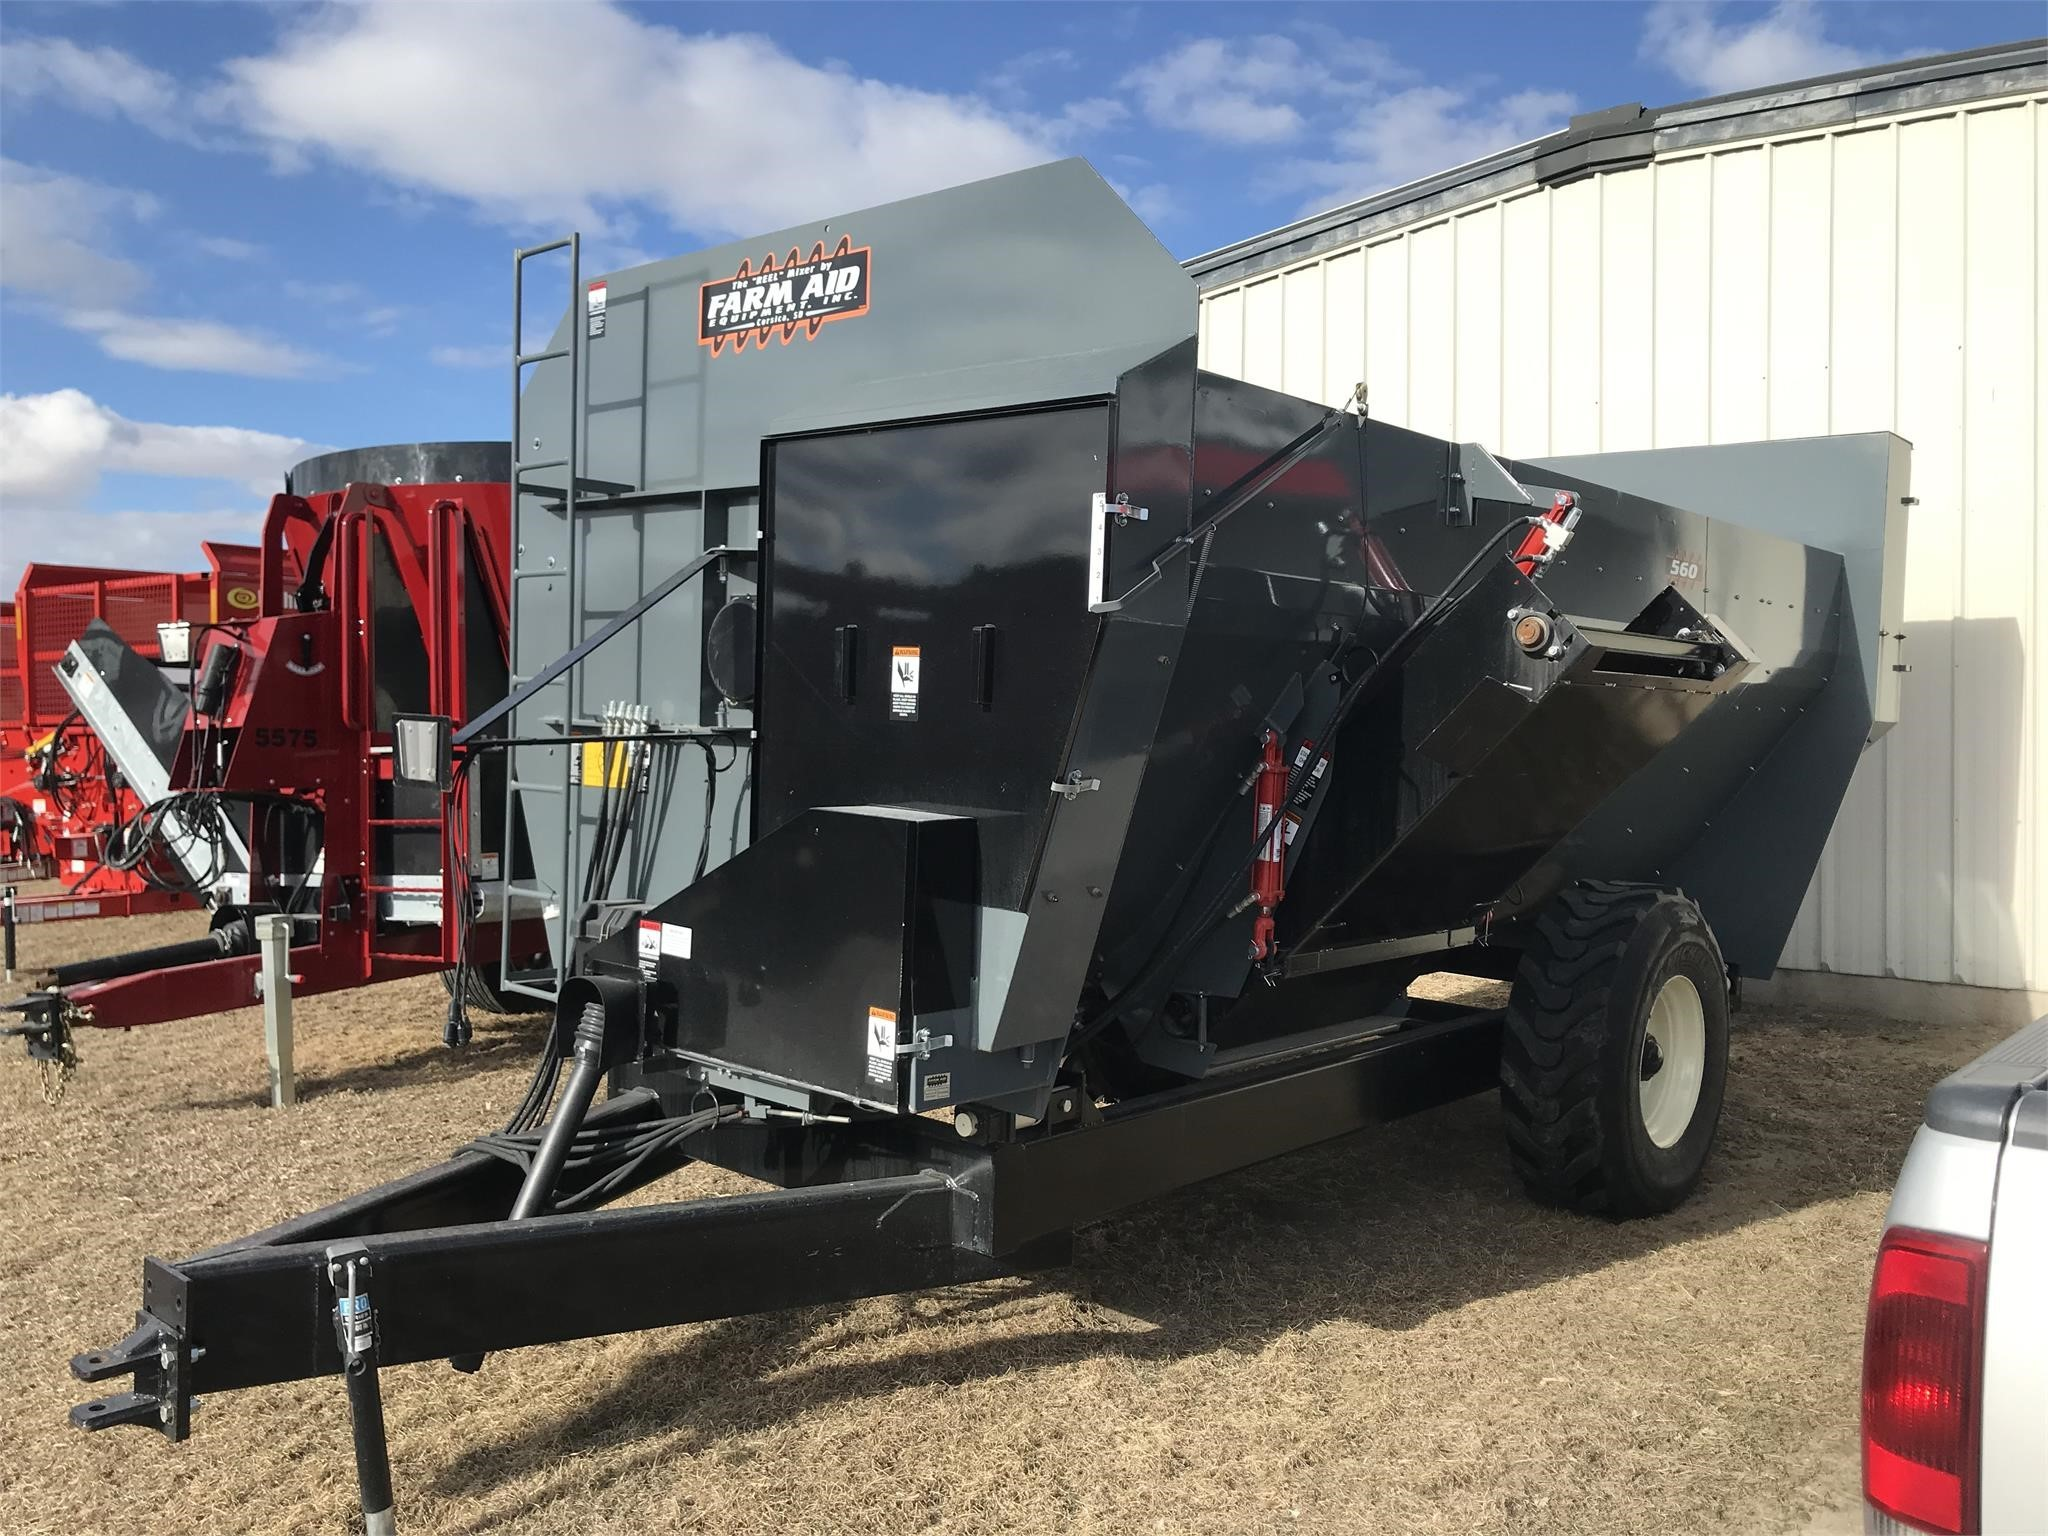 2019 Farm Aid 560 Feed Wagon